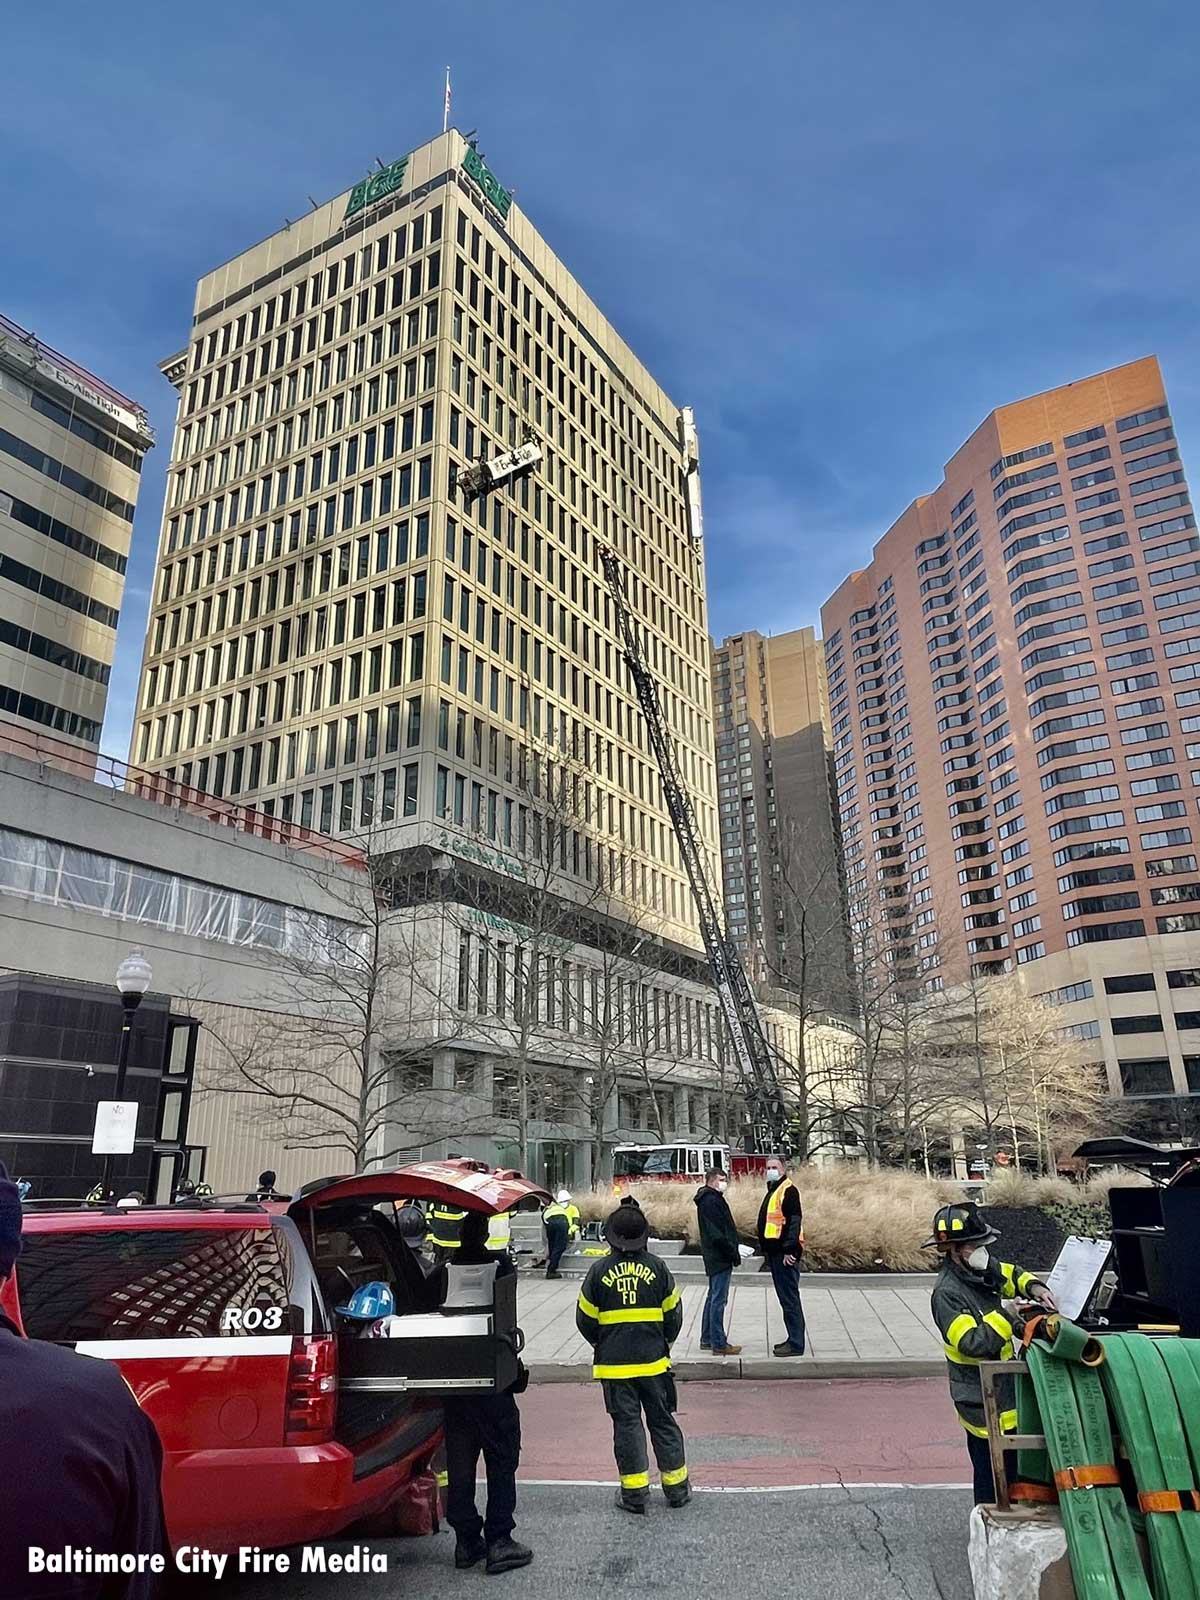 Firefighters respond to an explosion and rescue situation in Baltimore